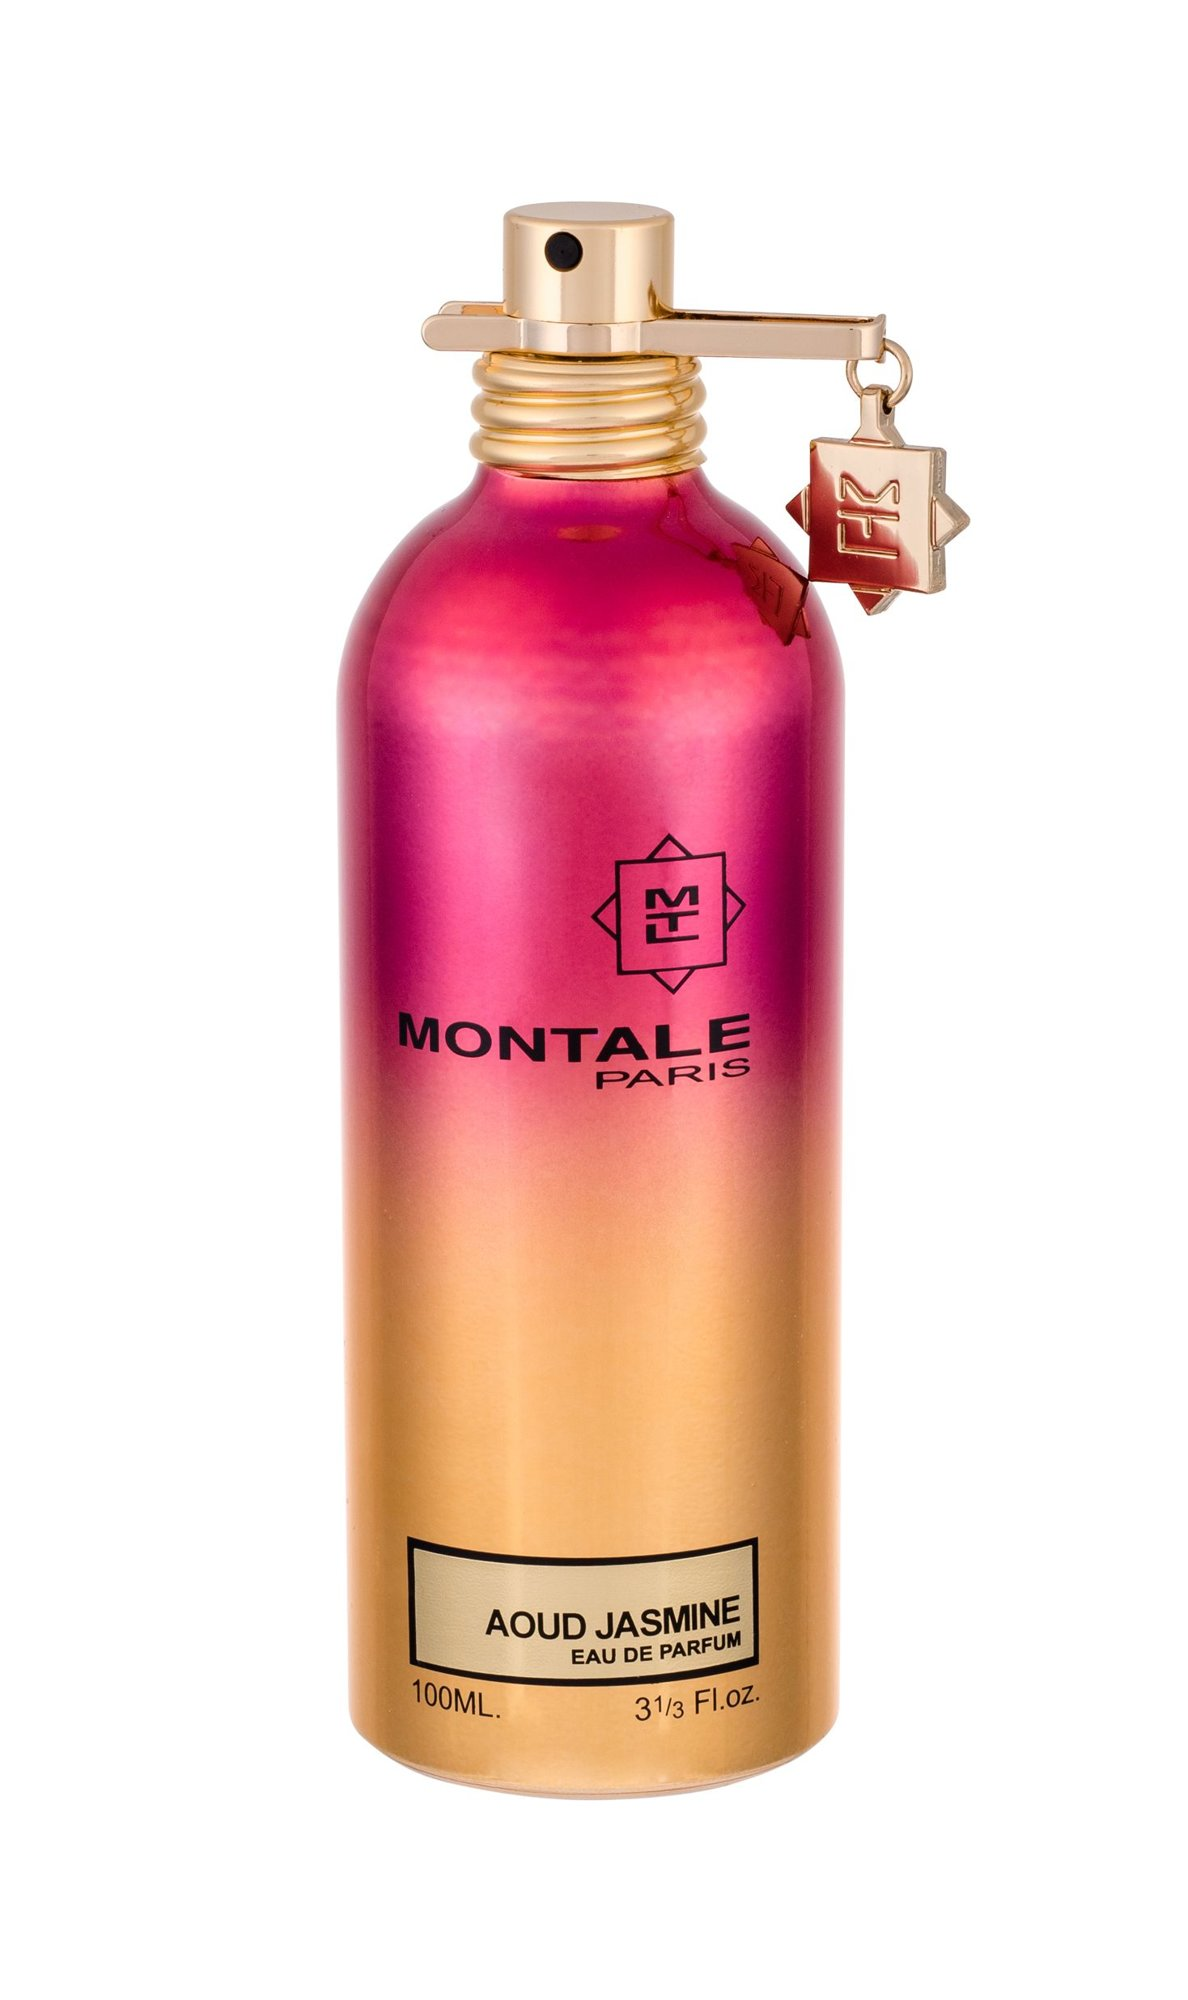 Montale Paris Aoud Jasmine EDP 100ml